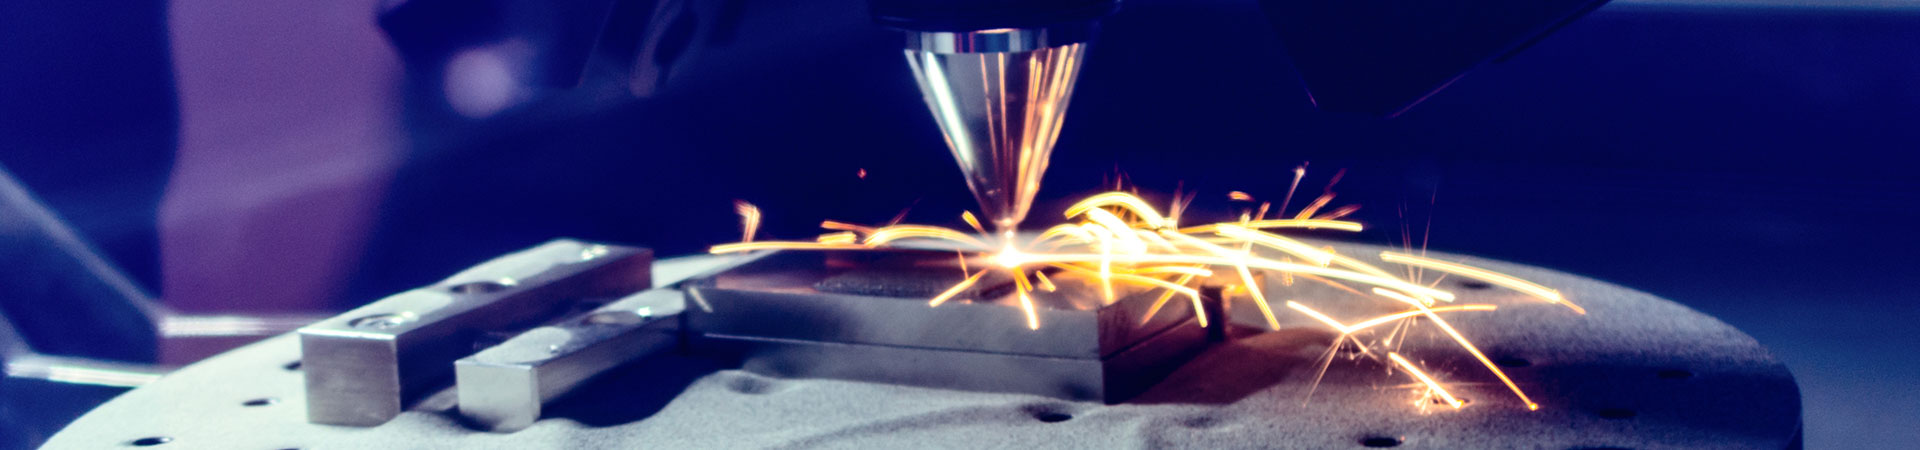 Metal additive Manufacturing process, additive manufacturing technologies